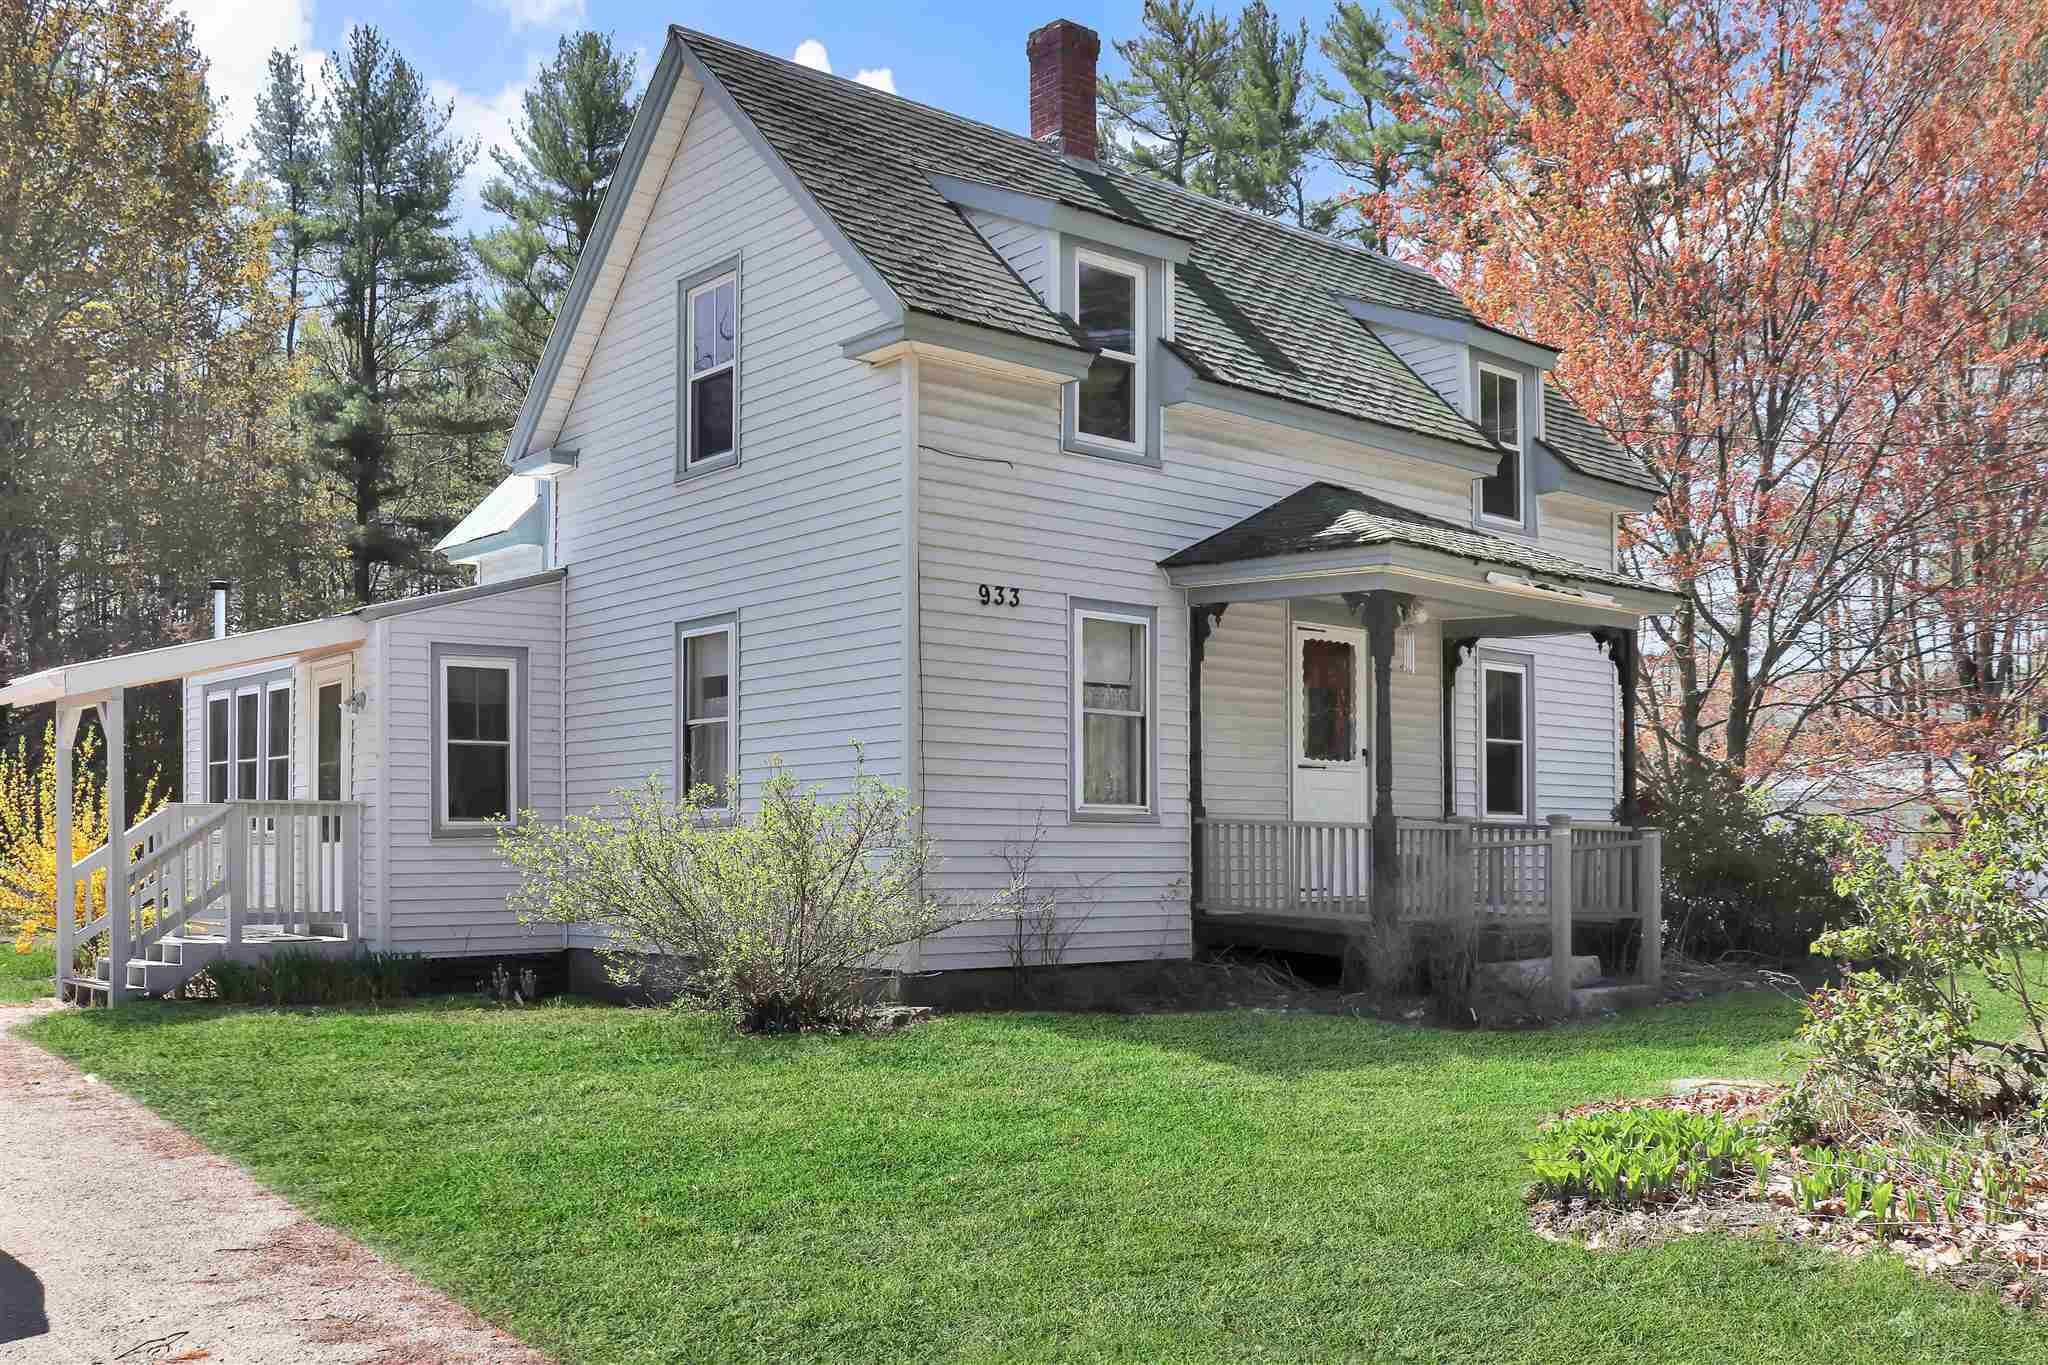 Photo of 933 East Main Street Conway NH 03813